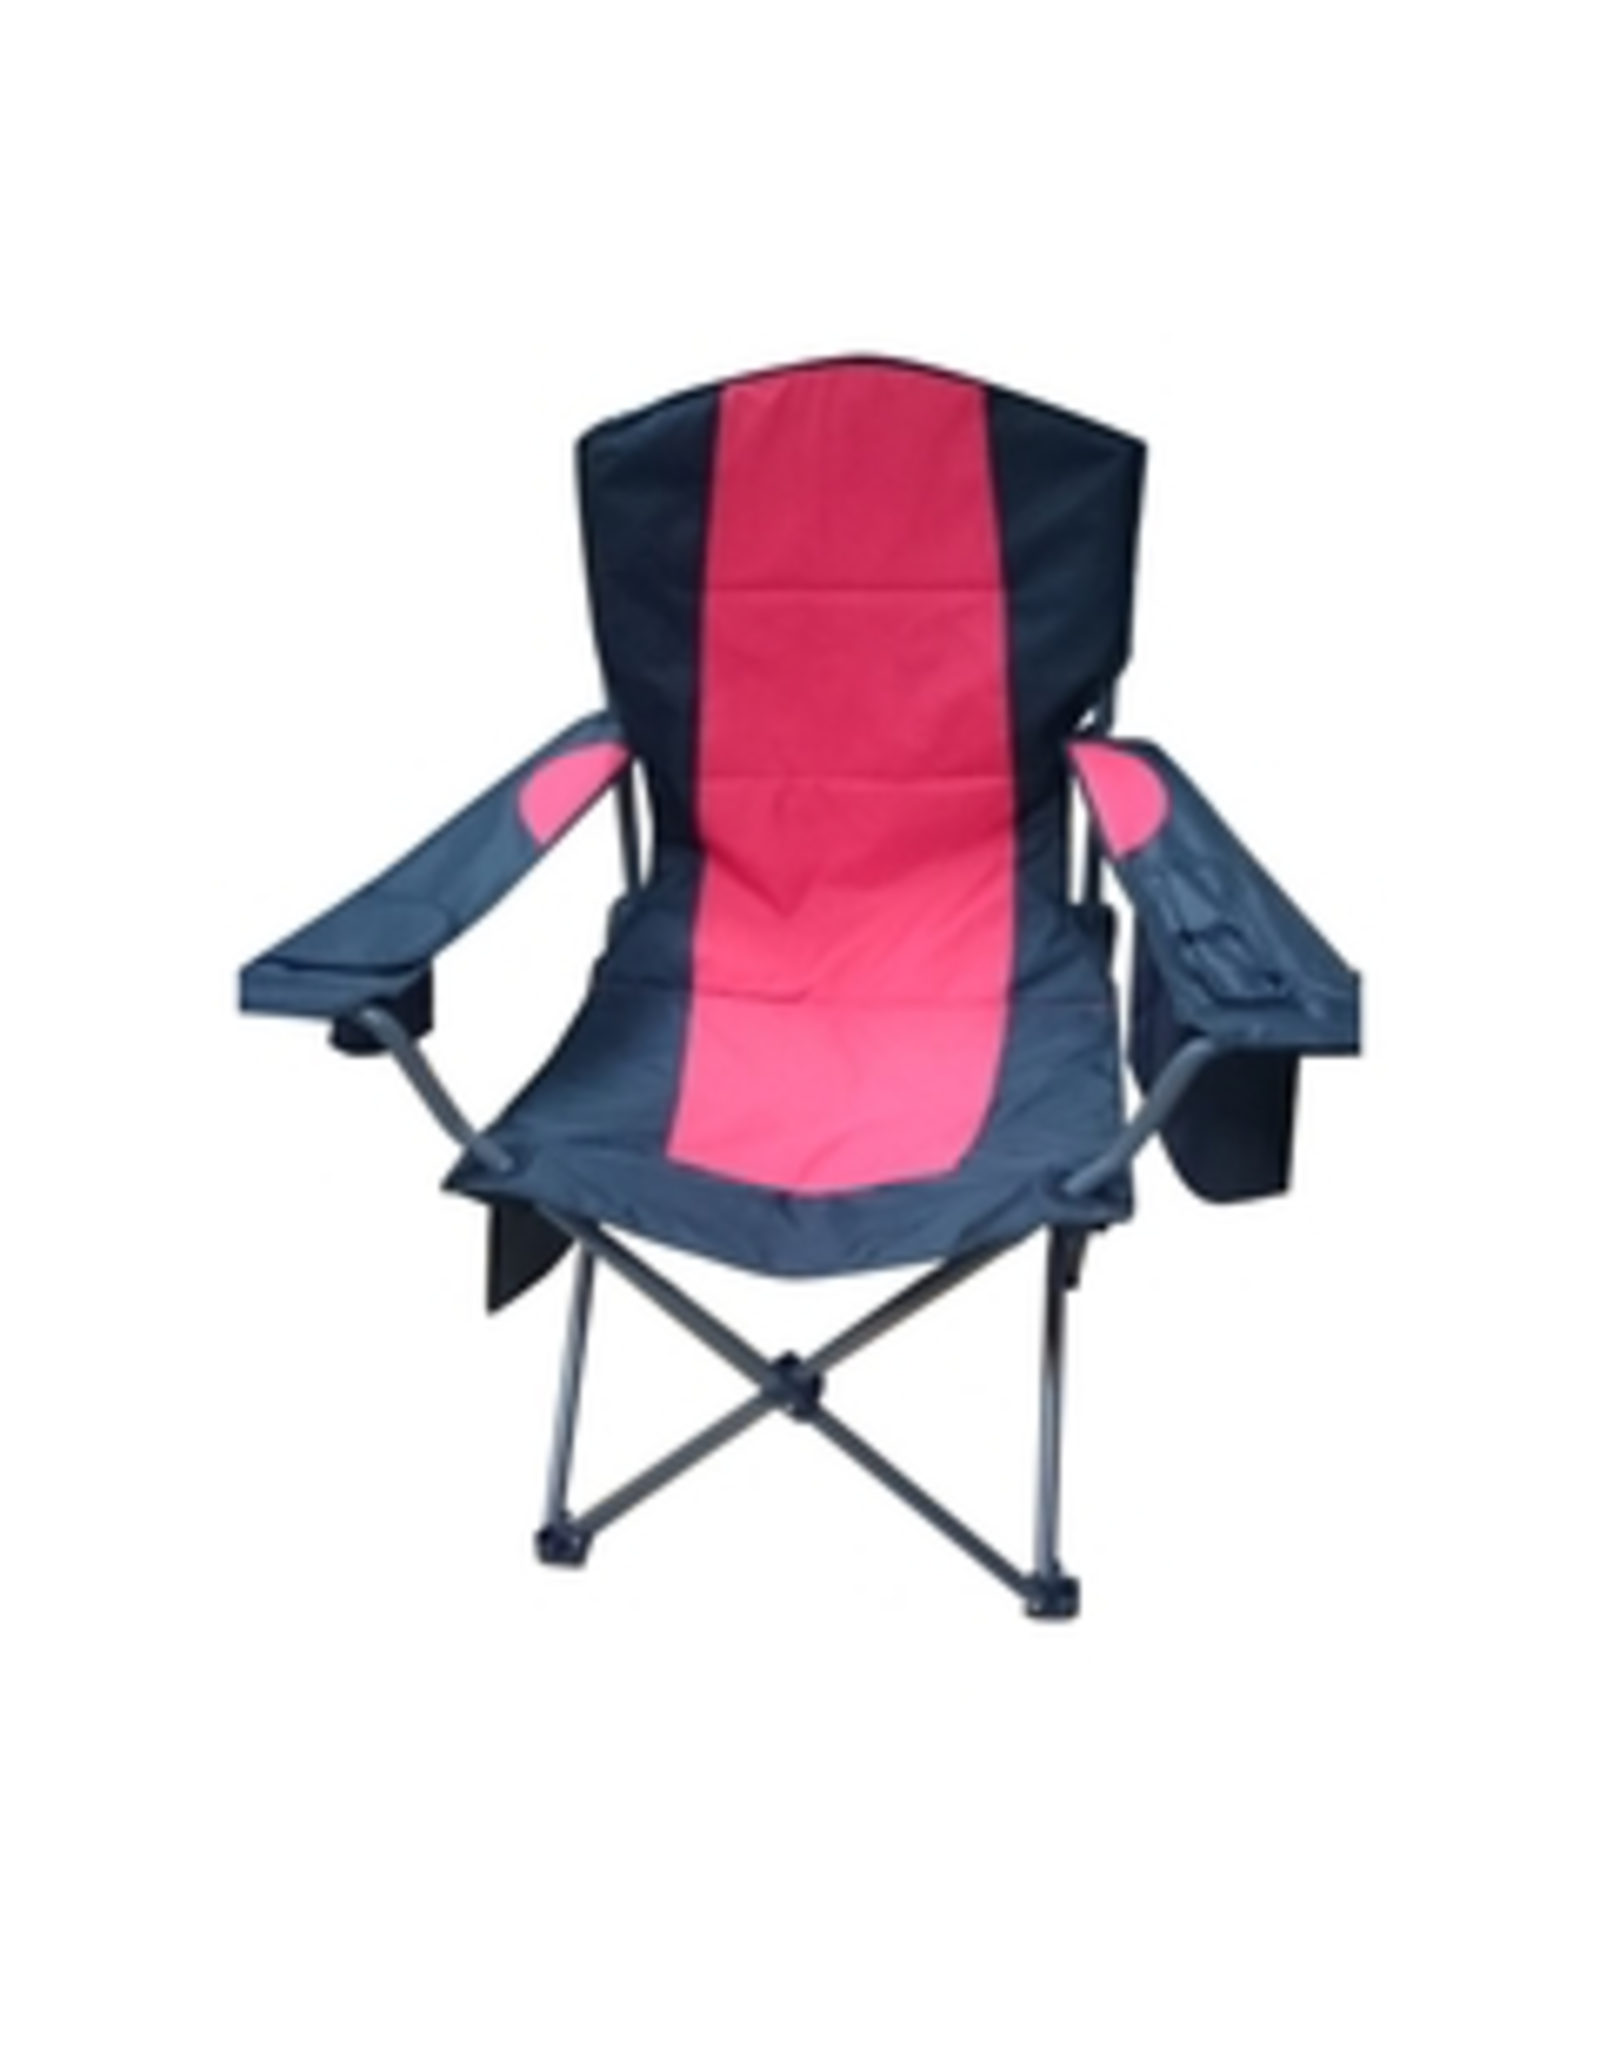 GKS Large camping chair